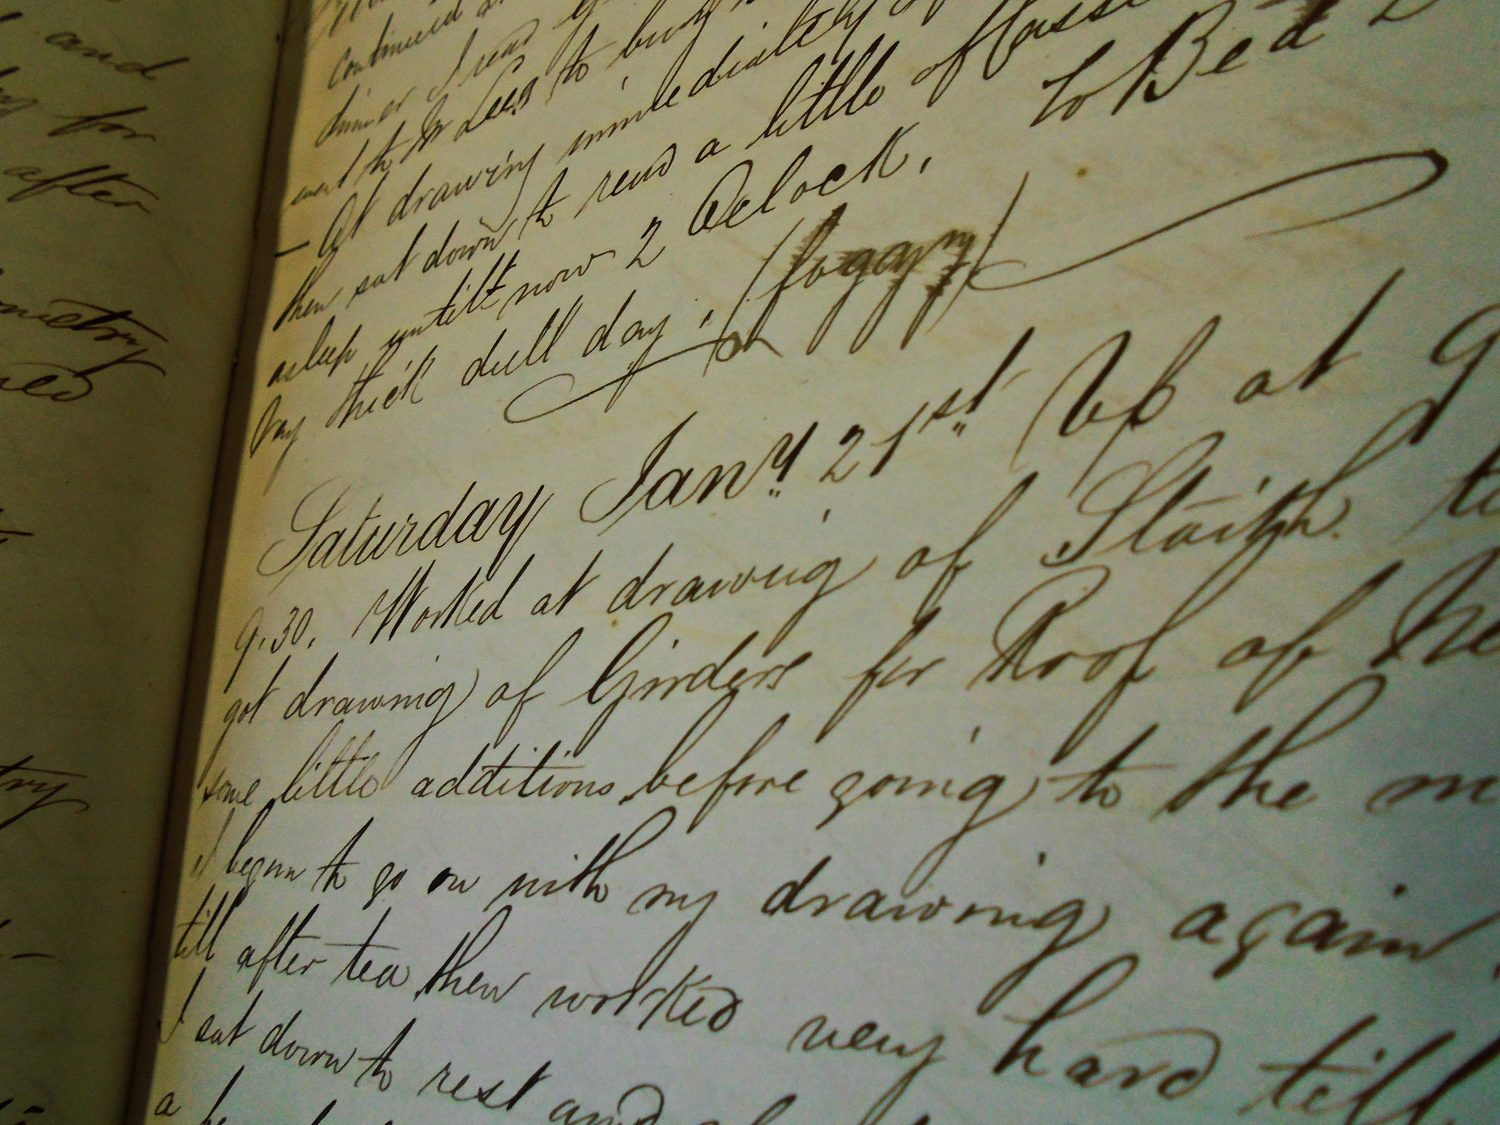 page of cursive handwriting